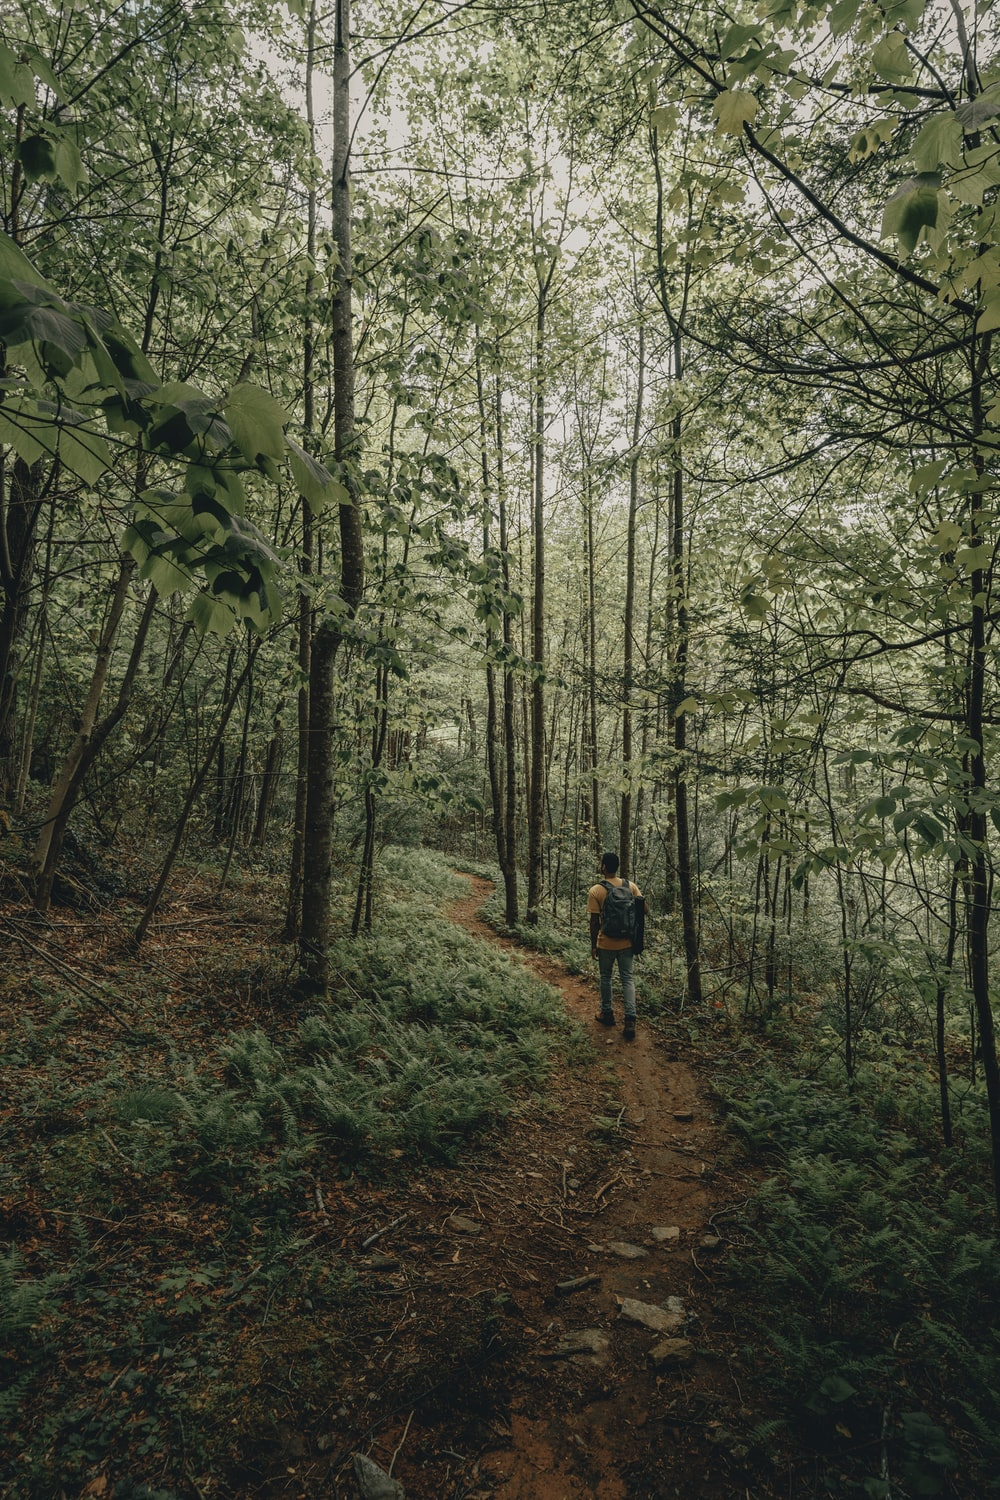 person in red jacket walking on forest during daytime